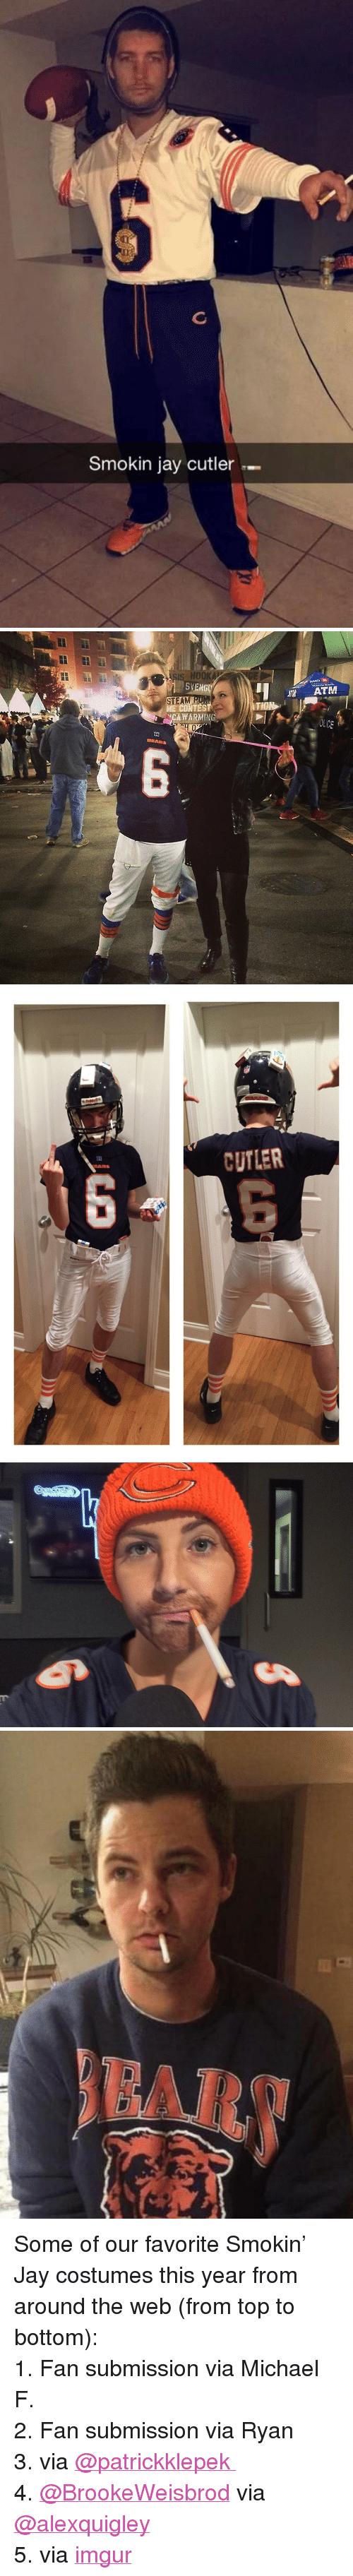 "Jay Cutler: 6  Smokin jay cutler-   STEA  ATM  TEST  WARMING   CUTLER <p>Some of our favorite Smokin&rsquo; Jay costumes this year from around the web (from top to bottom):</p> <p>1. Fan submission via Michael F.</p> <p>2. Fan submission via Ryan</p> <p>3. via <a href=""https://twitter.com/patrickklepek/status/528373513913397248/photo/1"" target=""_blank"">@patrickklepek​ </a></p> <p>4. <a href=""https://twitter.com/BrookeWeisbrod"" target=""_blank"">@BrookeWeisbrod</a>​ via <a href=""https://twitter.com/alexquigley/status/529327786658643968"" target=""_blank"">@alexquigley</a>  <u><br/></u></p> <p>5. via <a href=""http://imgur.com/KNqsf6J"" target=""_blank"">imgur</a></p>"